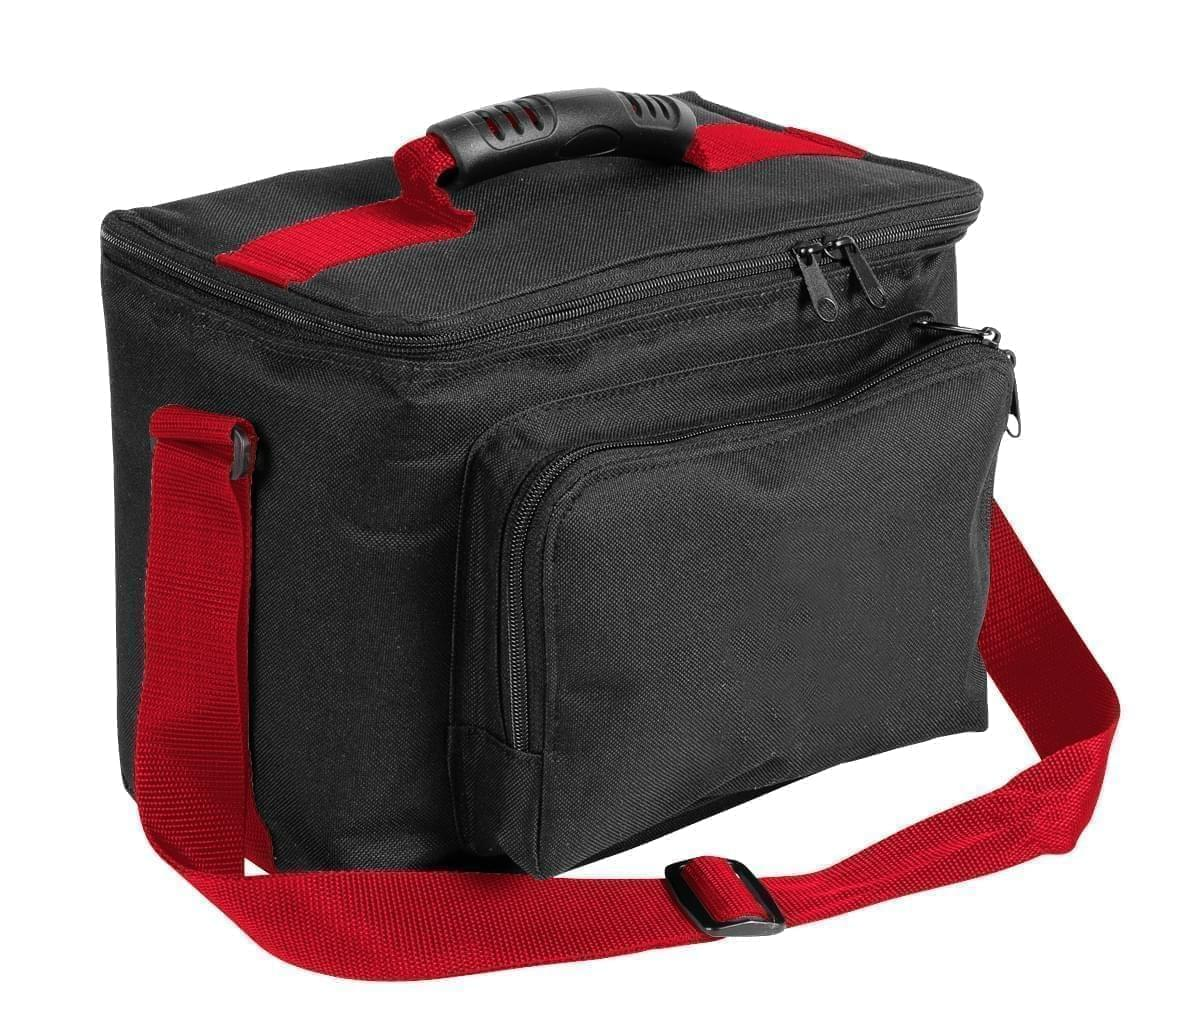 USA Made Nylon Poly Lunch Coolers, Black-Red, 11001161-AO2